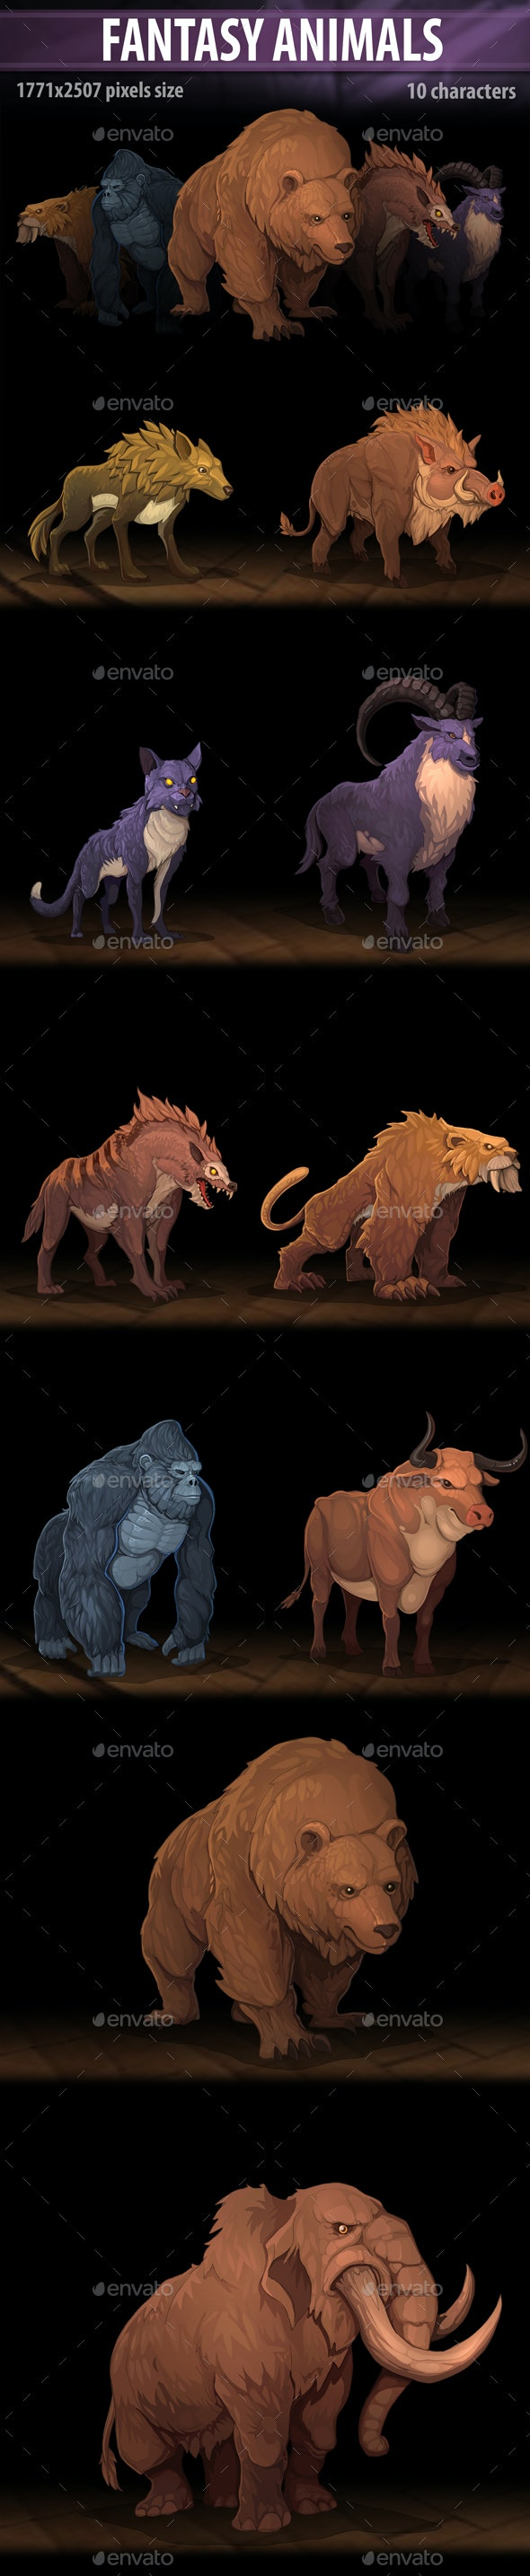 Fantasy Animals - Miscellaneous Game Assets